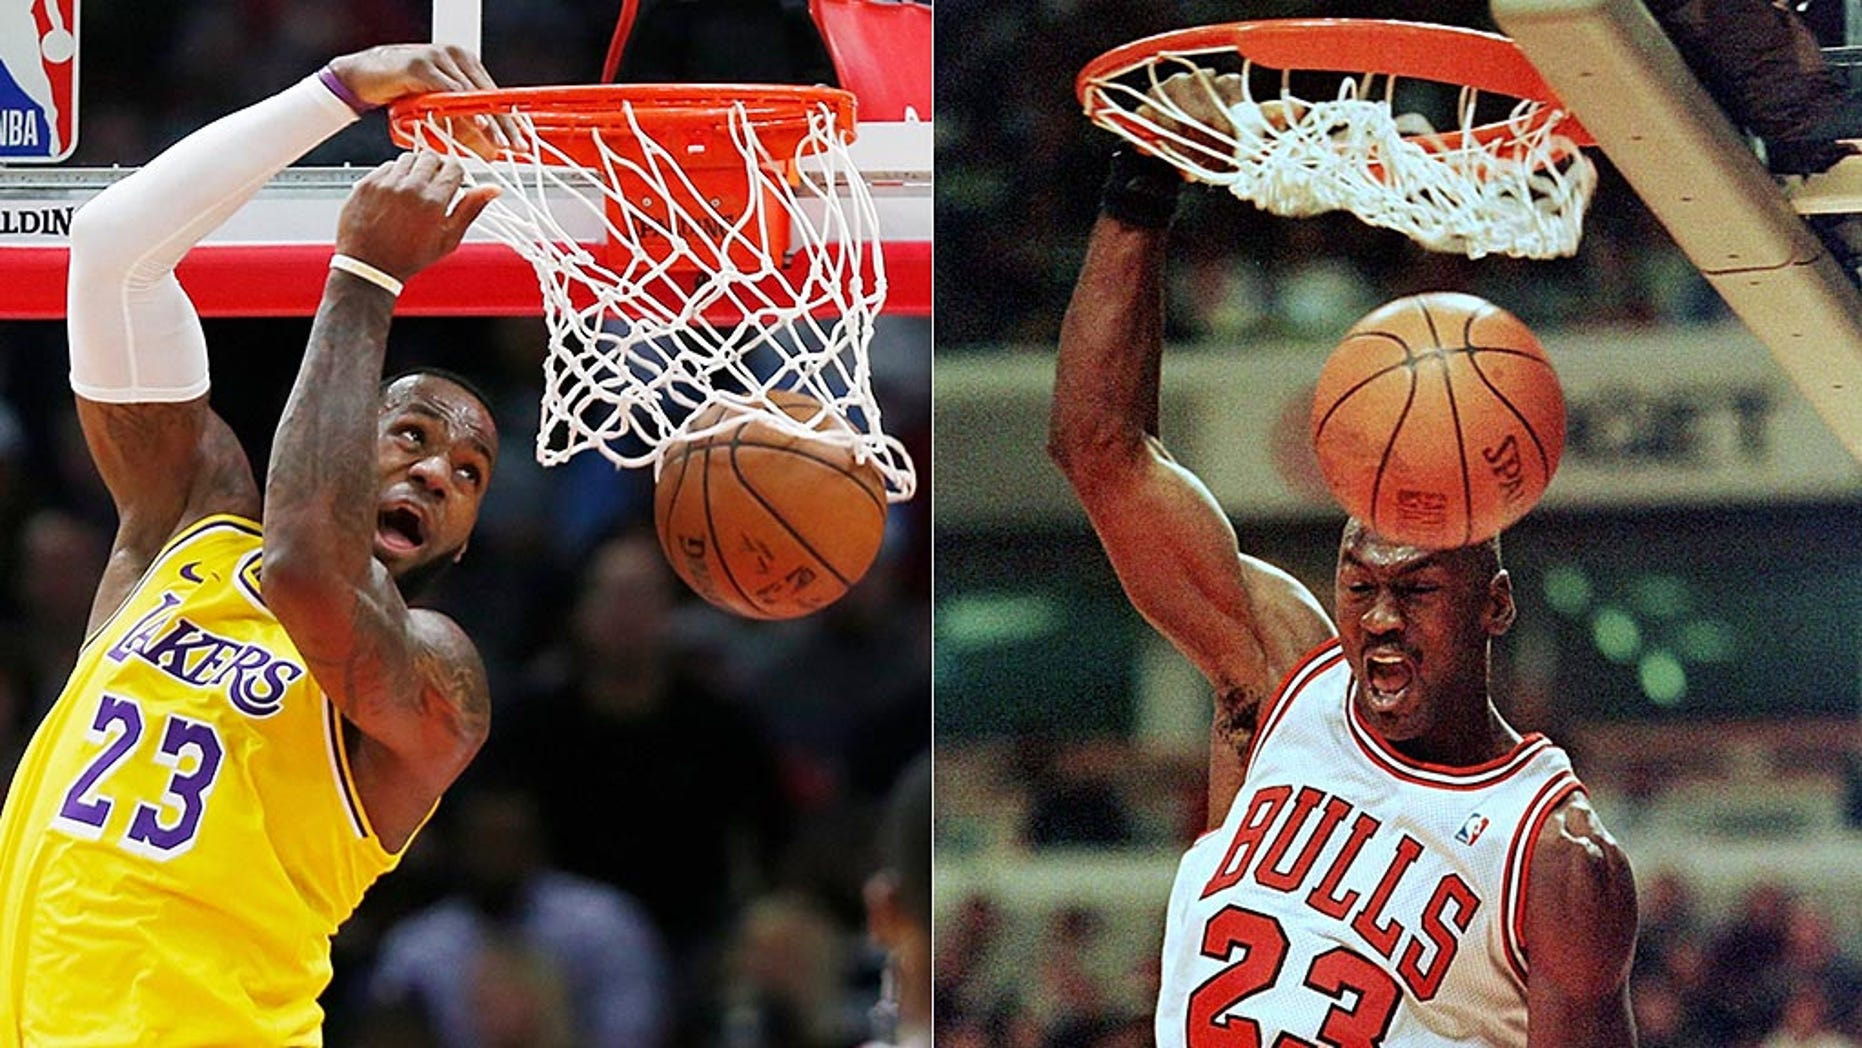 Basketball fans have voted on who is the best ever -- Michael Jordan or LeBron James  Michael Jordan overwhelmingly voted greatest hoops star ever, topping Lebron James lebron jordan AP Reuters